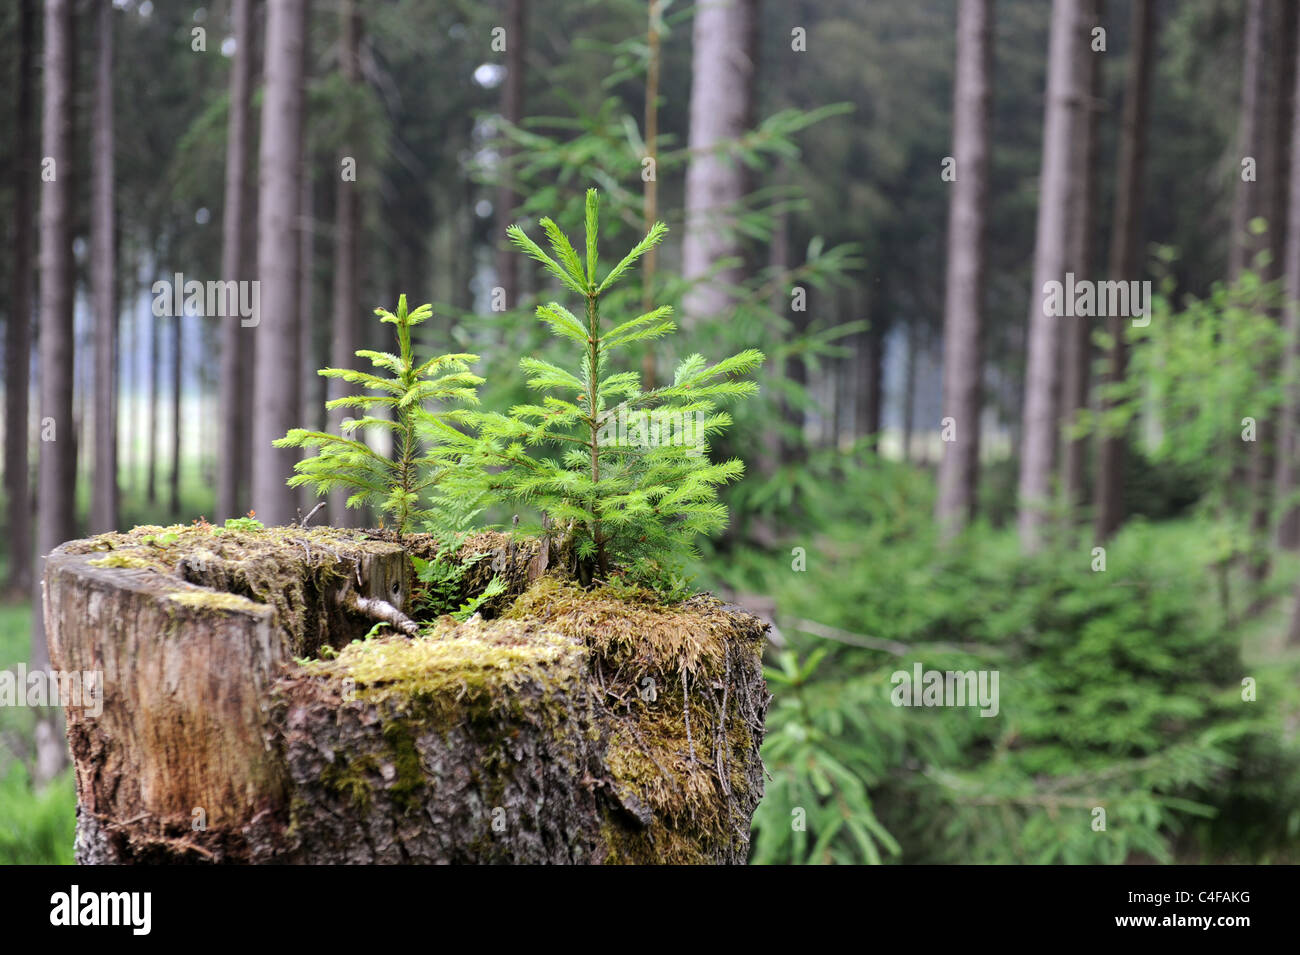 Young Spruce Tree Growing In The Rotting Stump Of Its